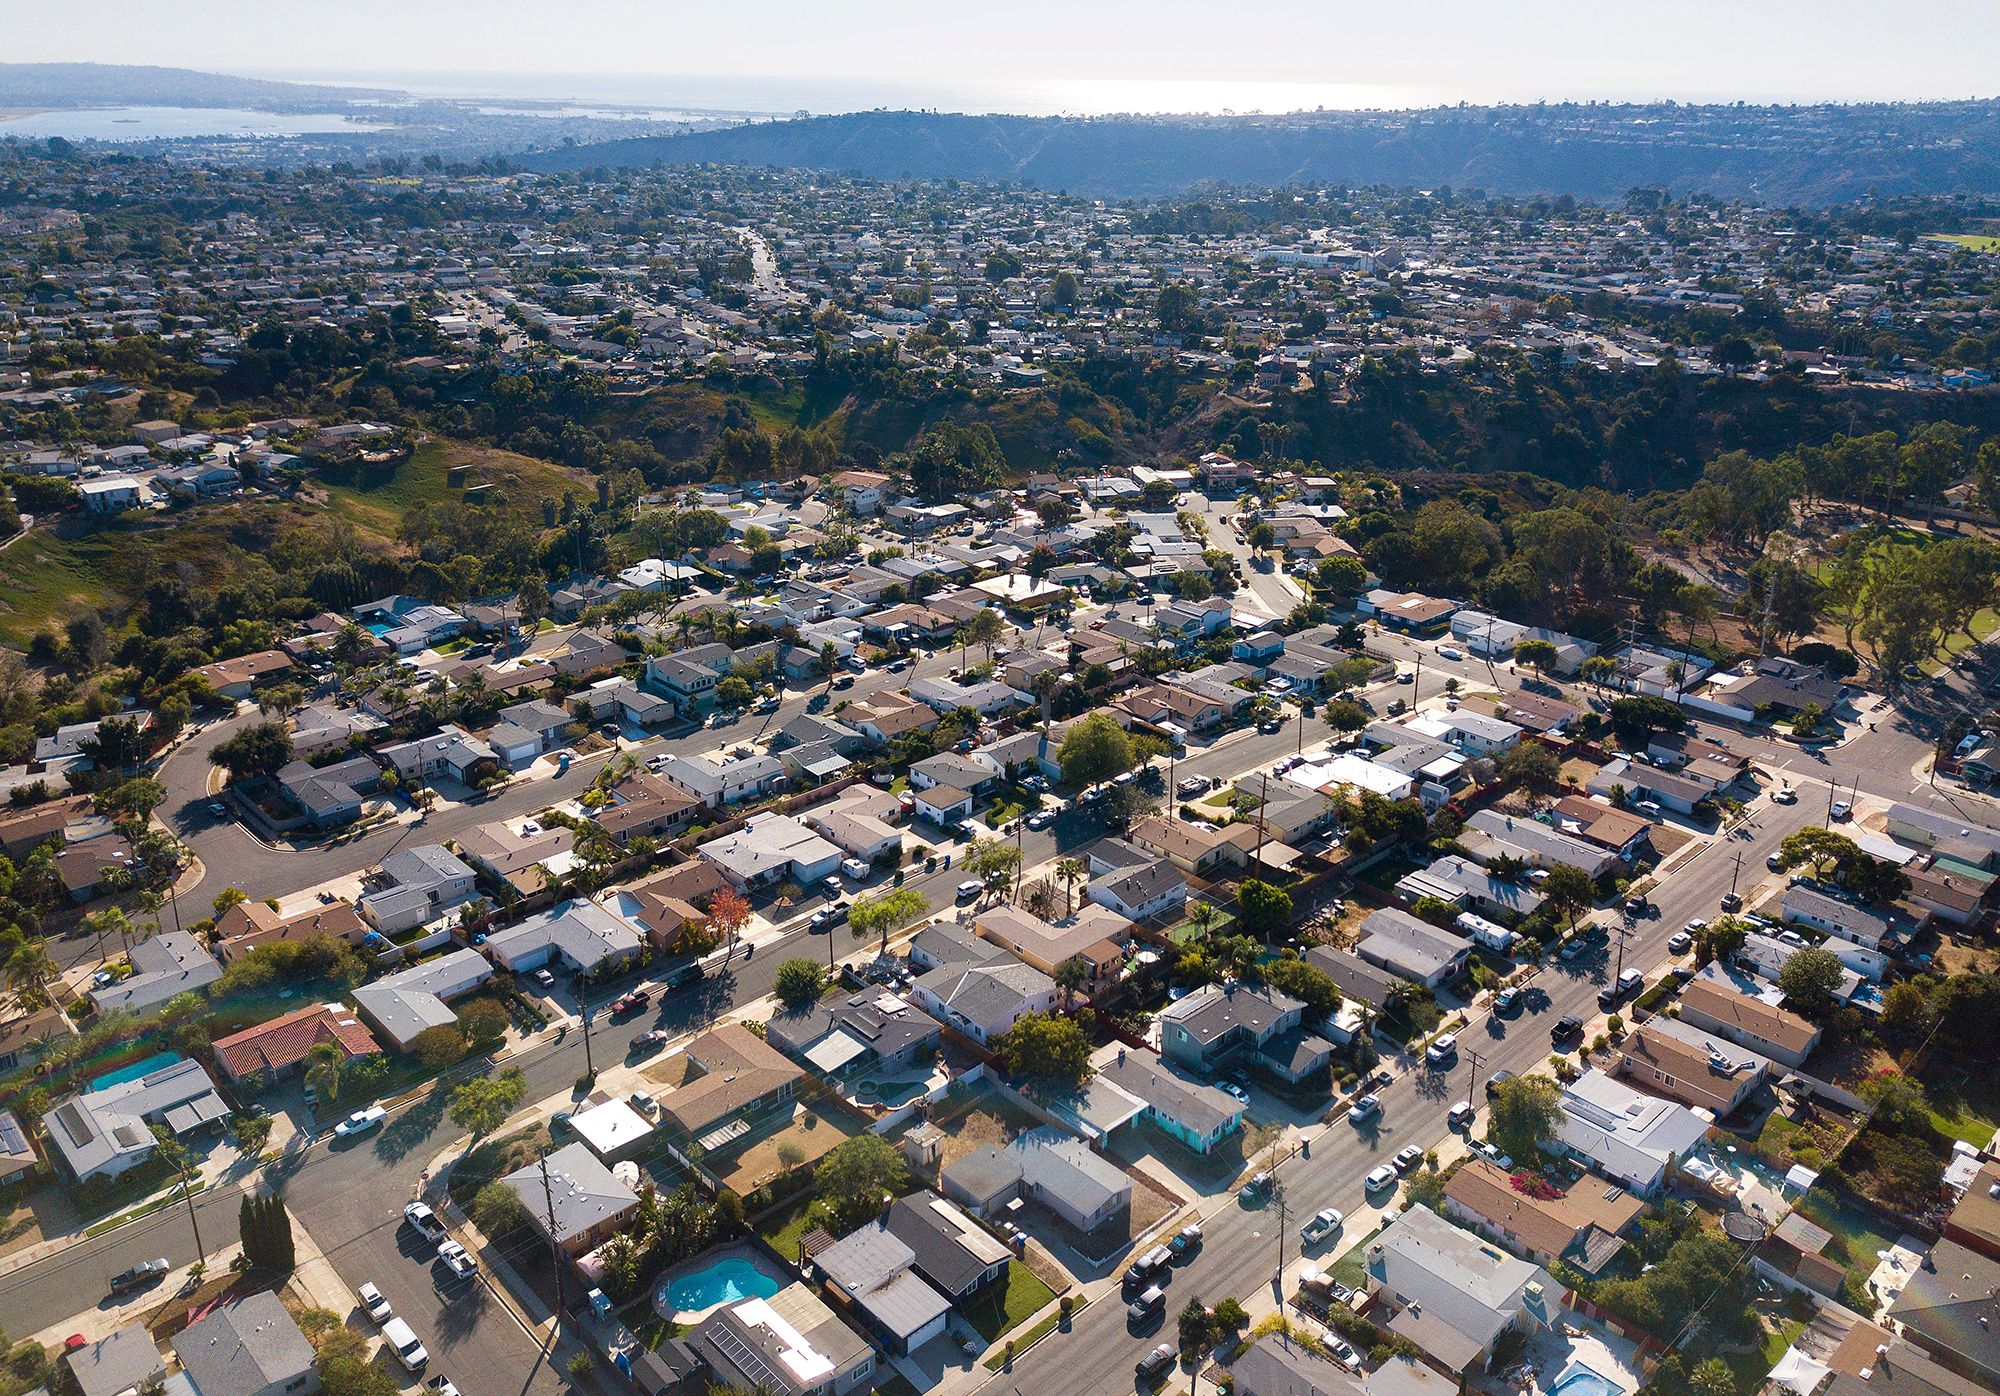 Single family homes line the streets of Clairemont on Tuesday, Oct. 27, 2020 in San Diego, CA.